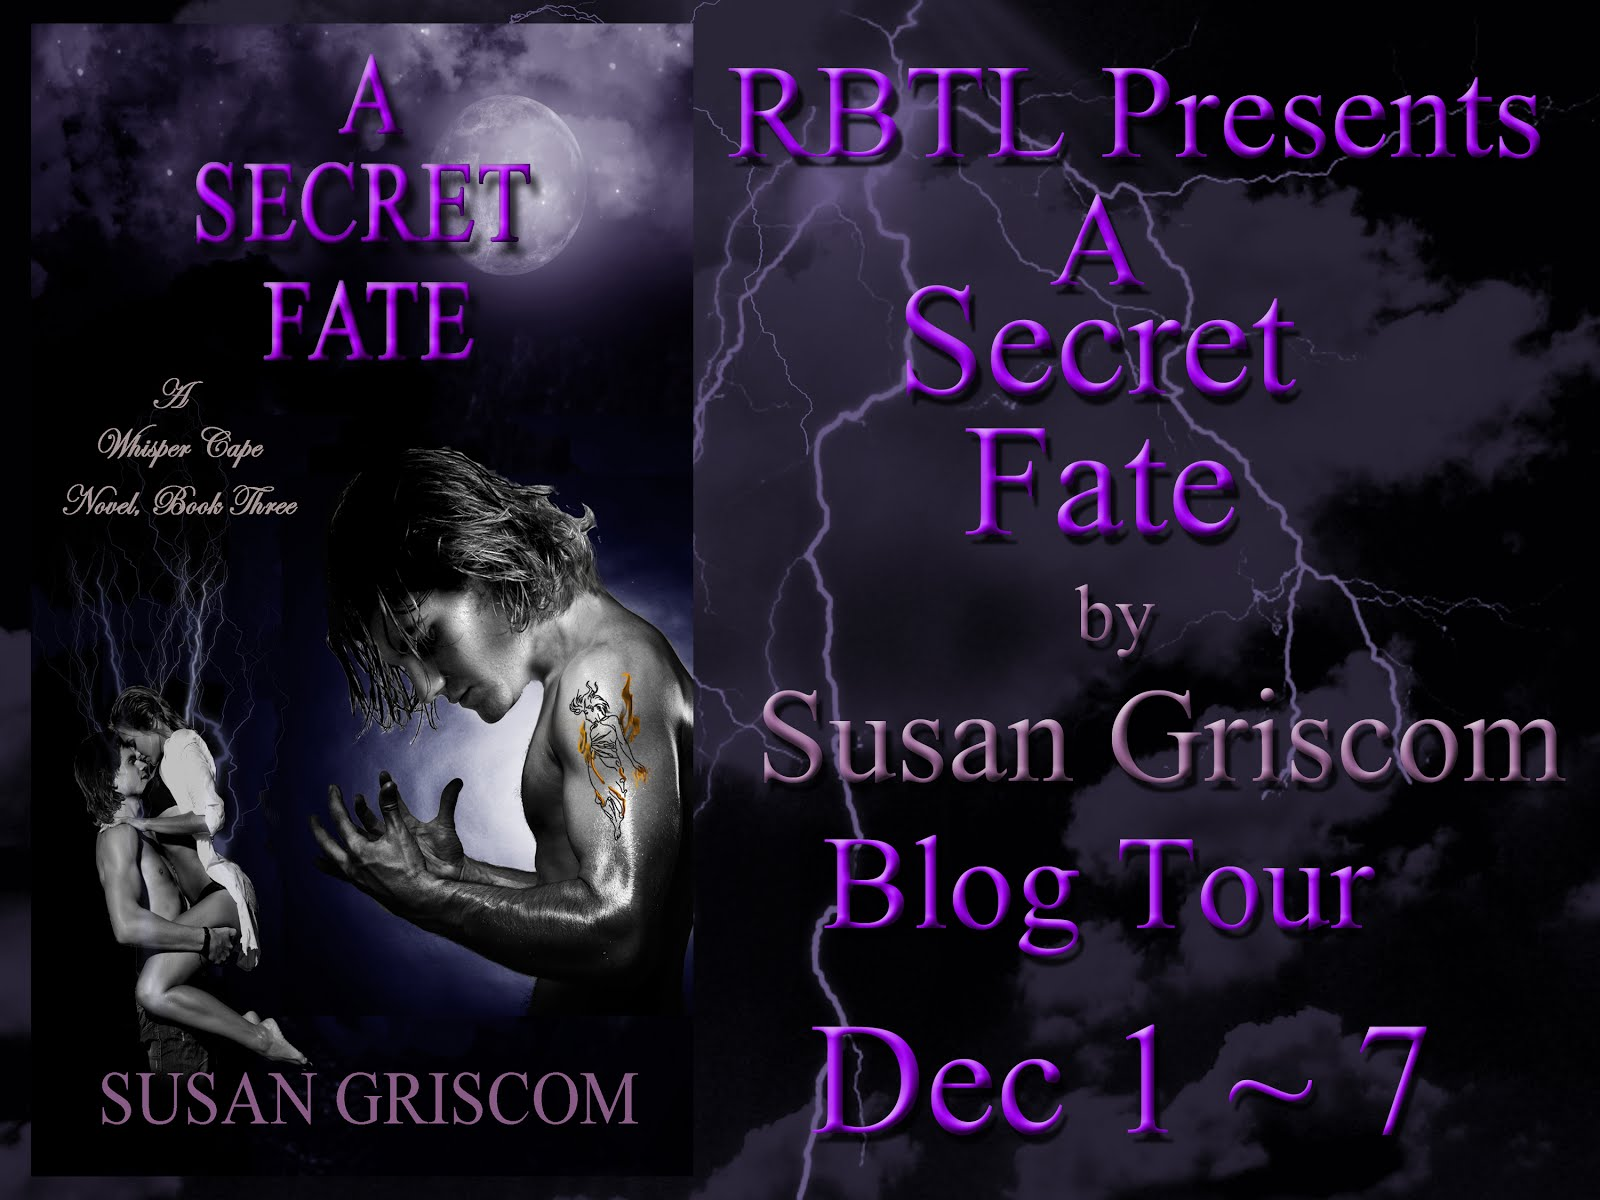 A Secret Fate Blog Tour